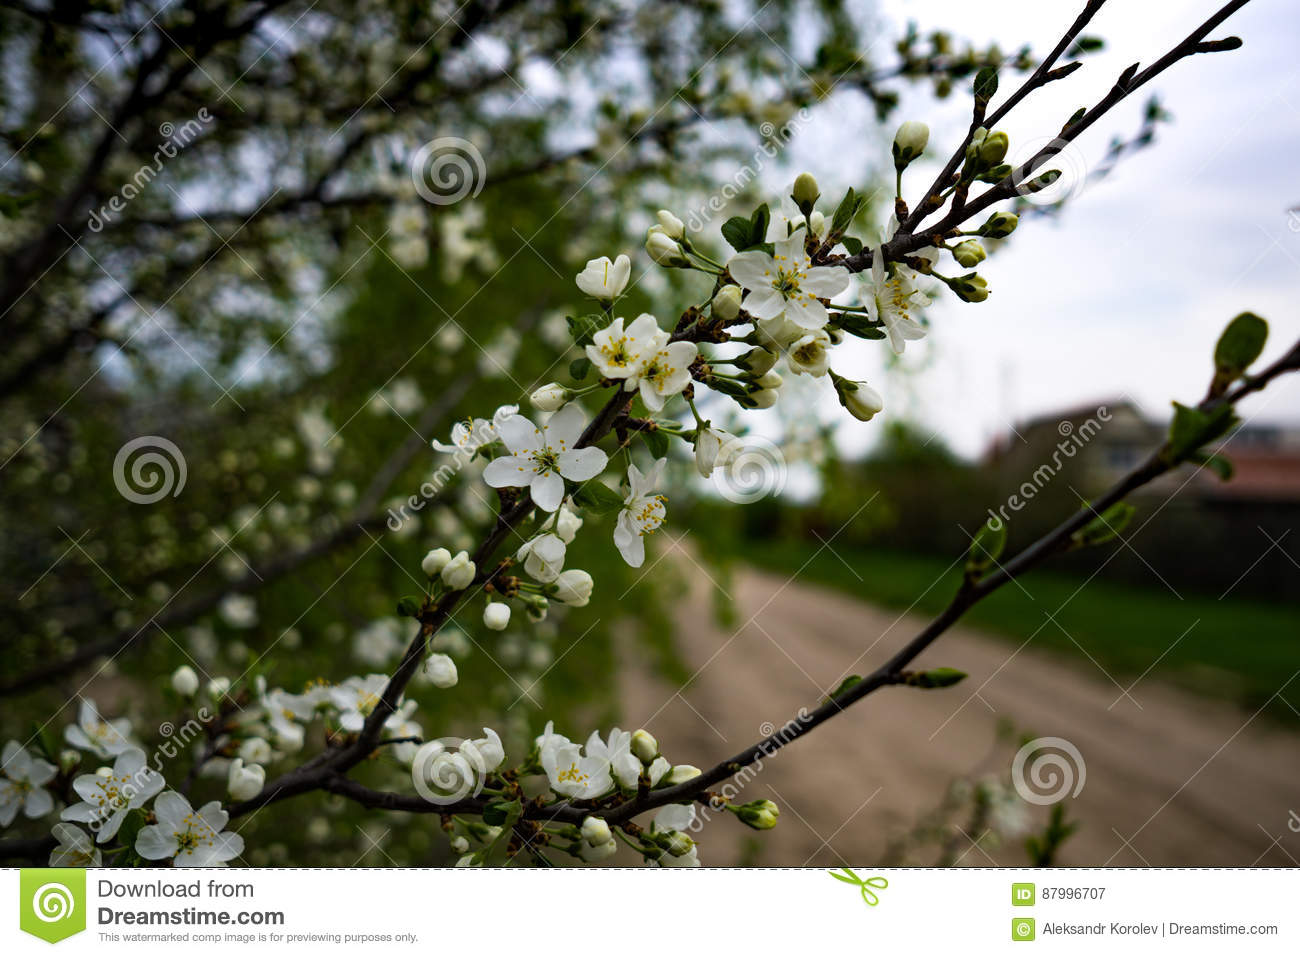 Small white flowers on a tree stock image image of floral download small white flowers on a tree stock image image of floral fragility mightylinksfo